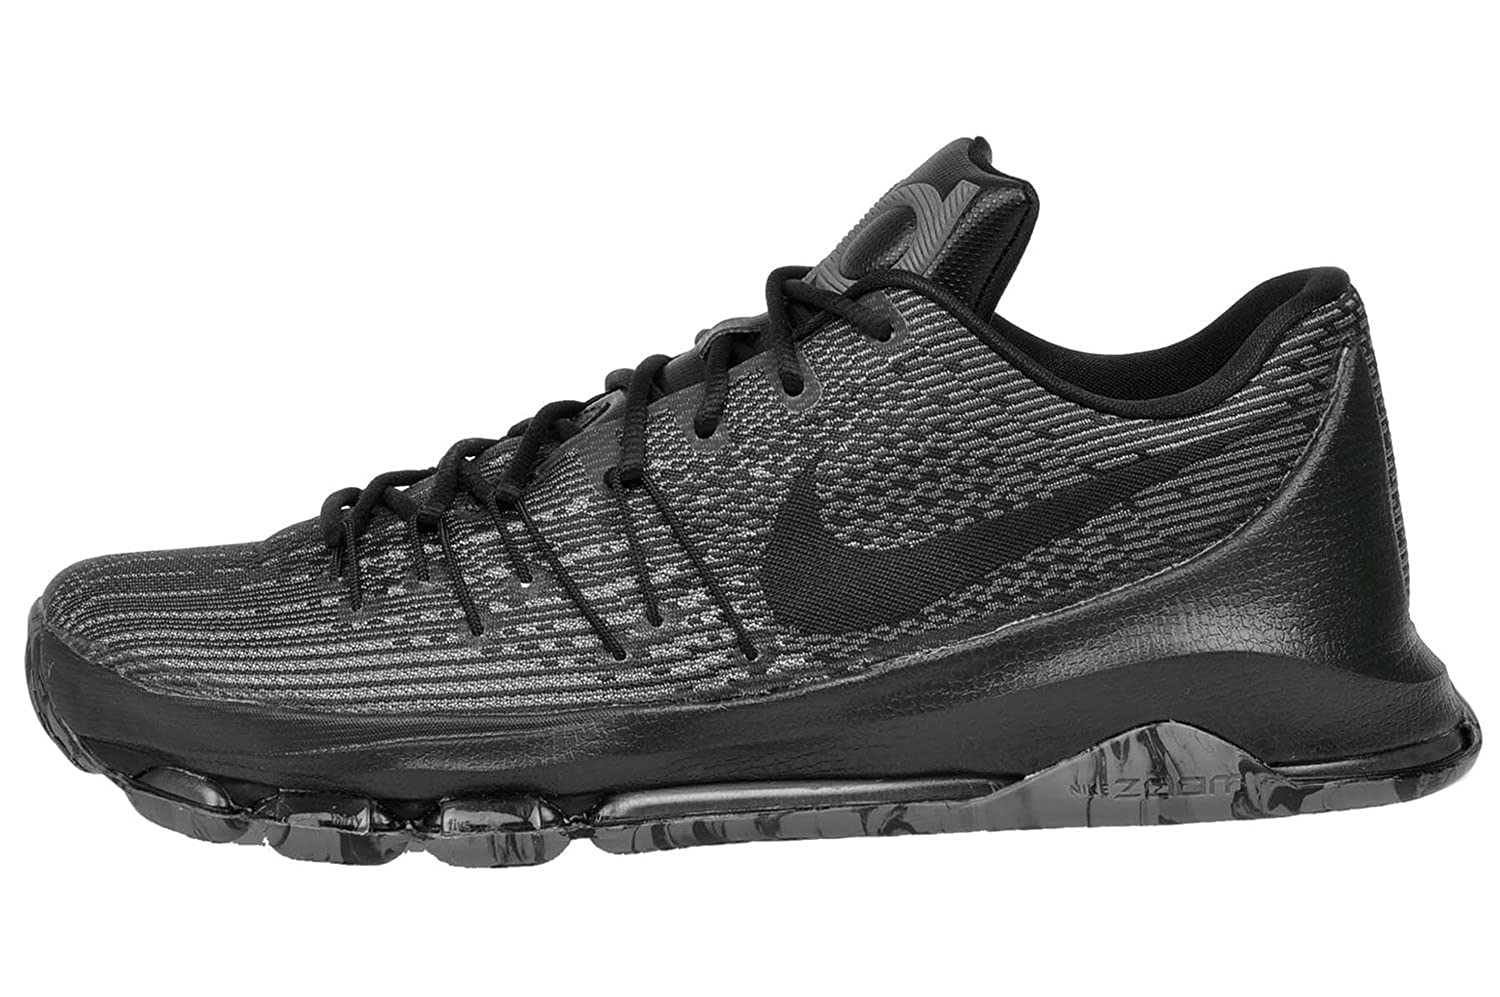 sneakers for cheap 27cf8 98c83 Amazon.com   Nike Mens Kevin Durant KD 8 VII Blackout Basketball Shoes Black Cool  Grey 749375-001 Size 8.5   Basketball